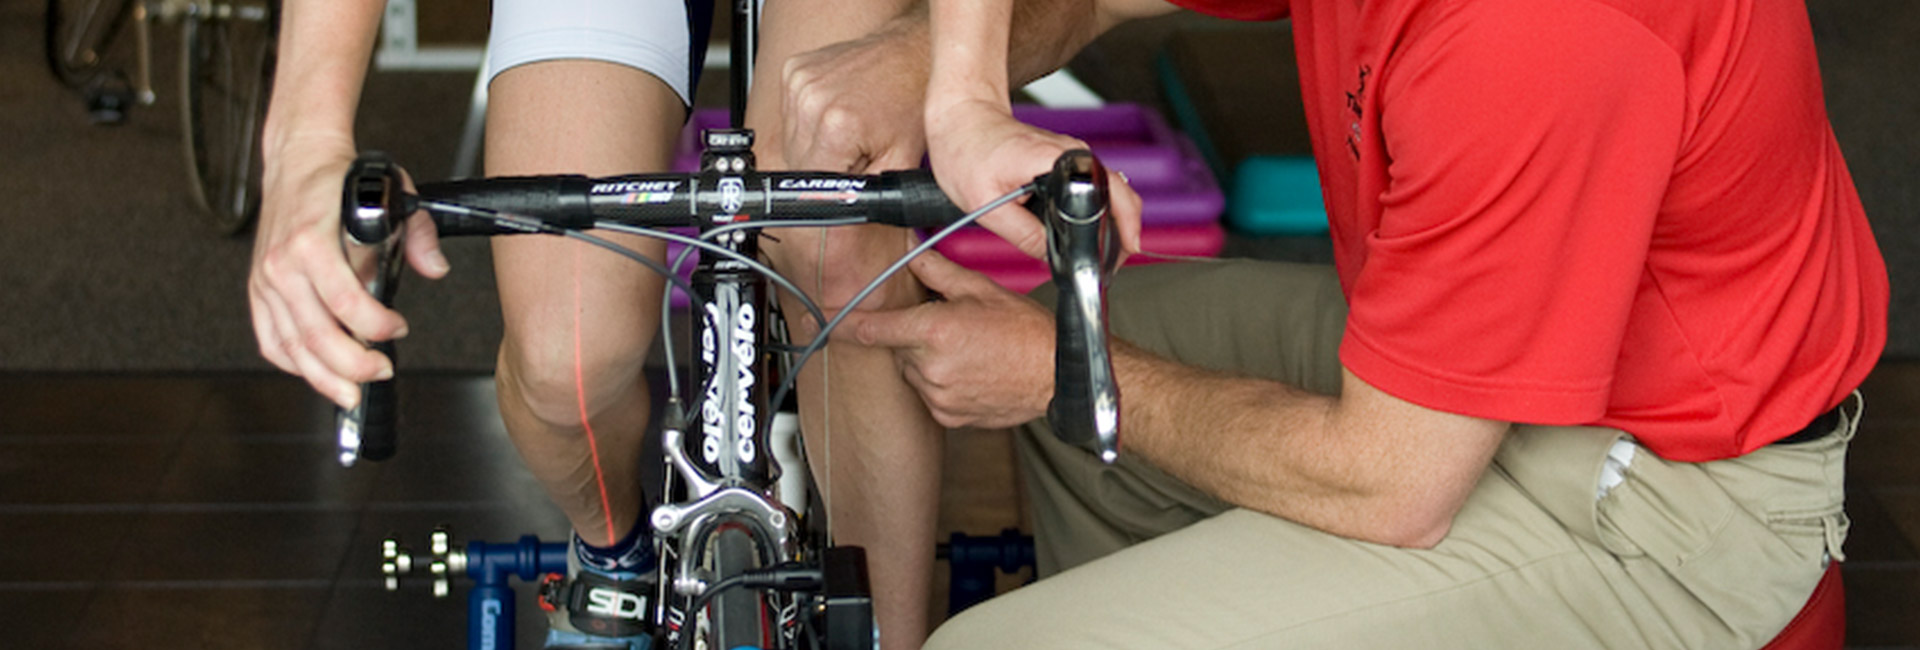 Bike-Fitting---Therapeutic-Associates-Physical-Therapy---Cyclefit-1